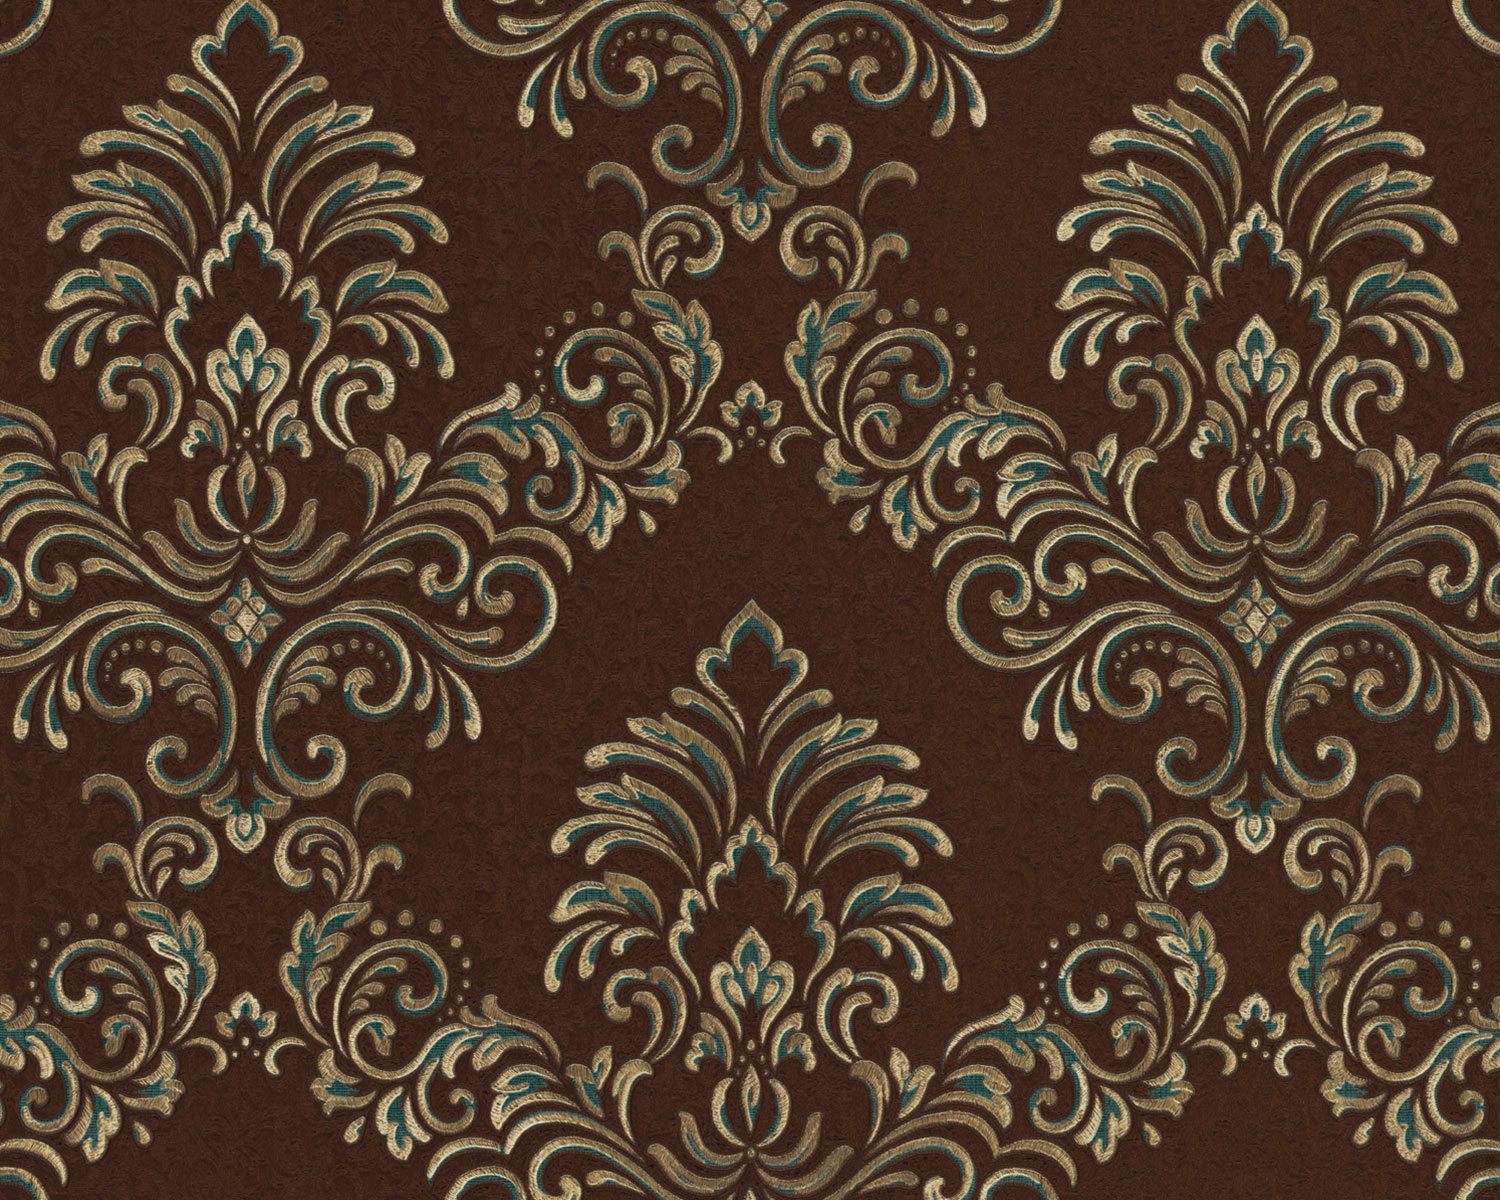 Details About Edem 9084 26 Baroque Wallcovering With Metallic Highlights Brown Gold 10 65 M2